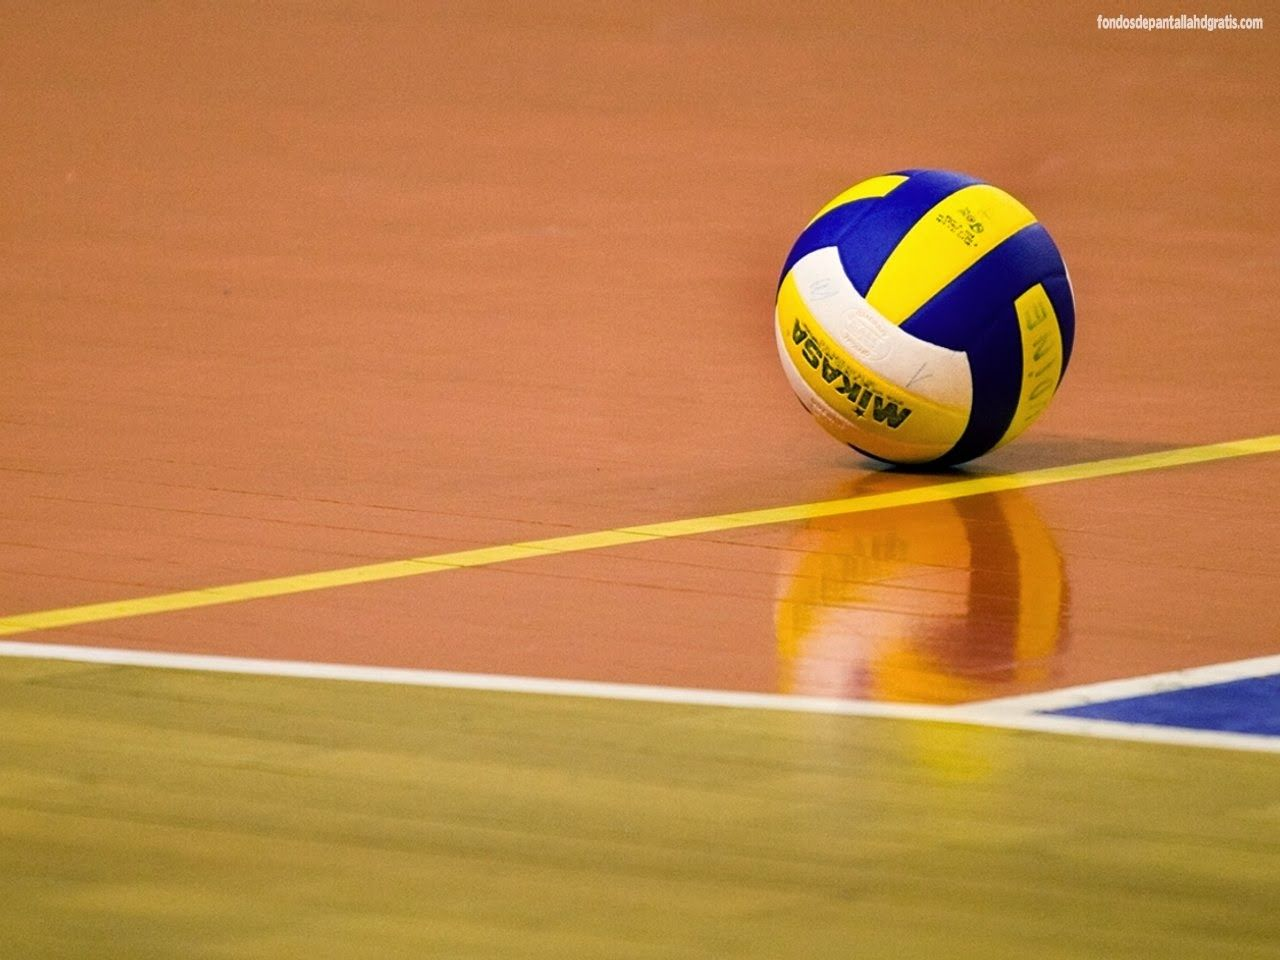 volleyball images download free new wallpapers hd high 1920×1080